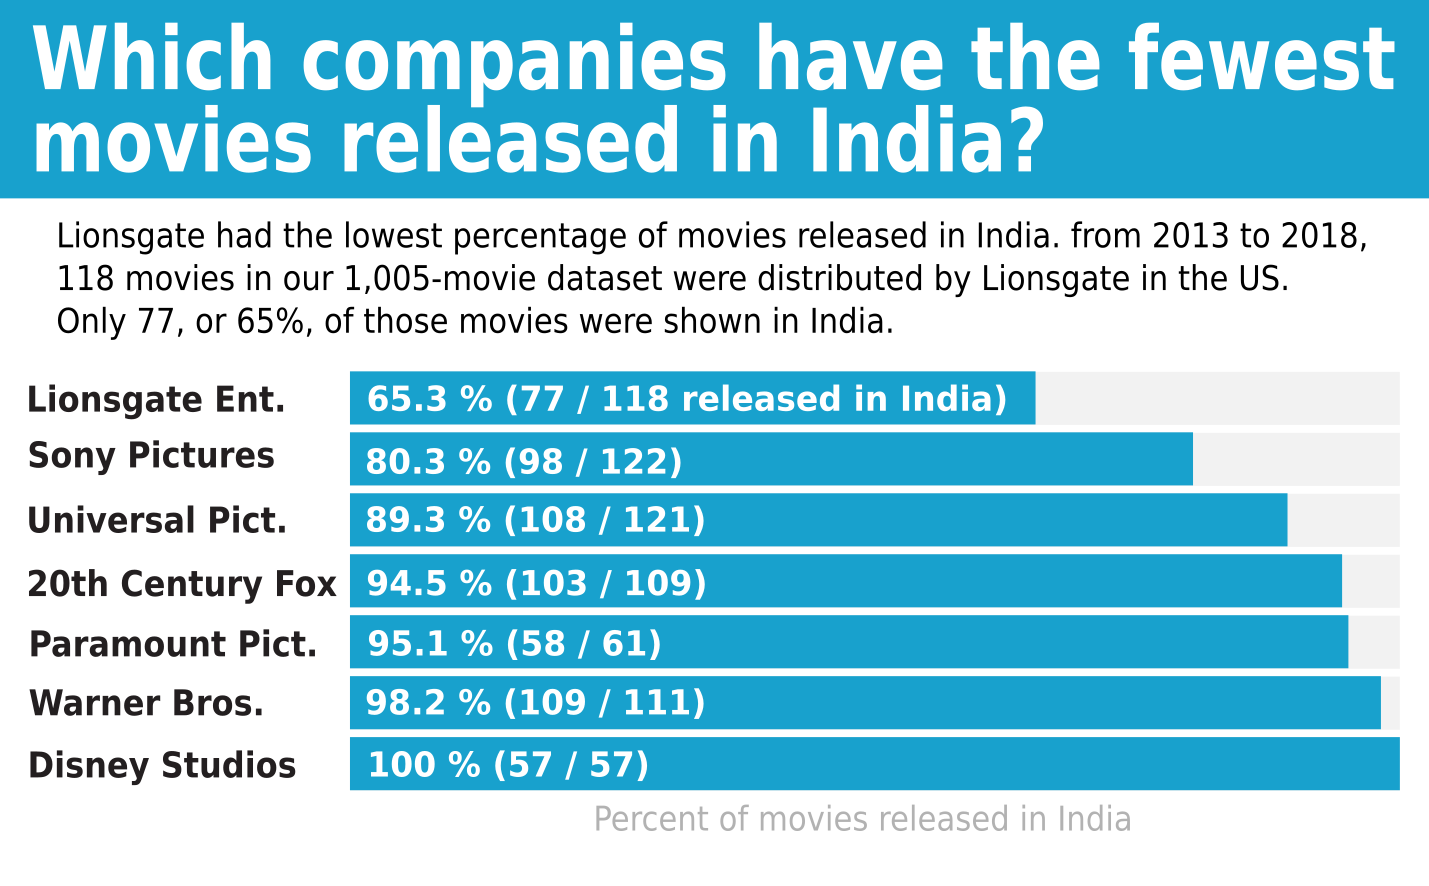 What Hollywood movies don't get released in India?